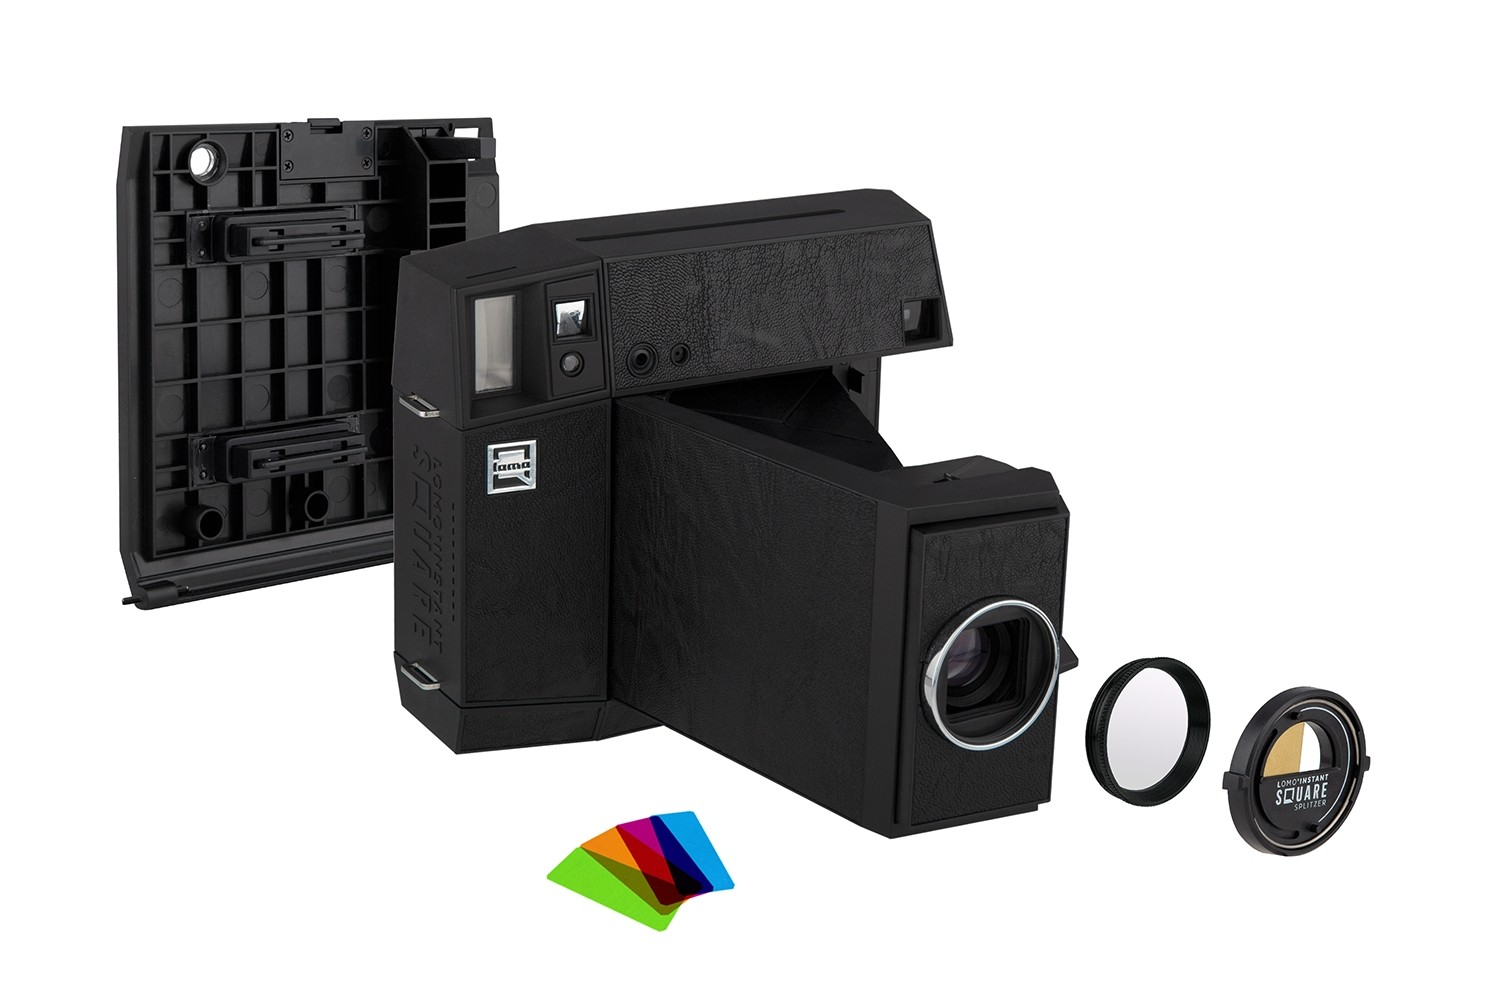 Lomo'Instant Square Glass Combo (Black Edition)